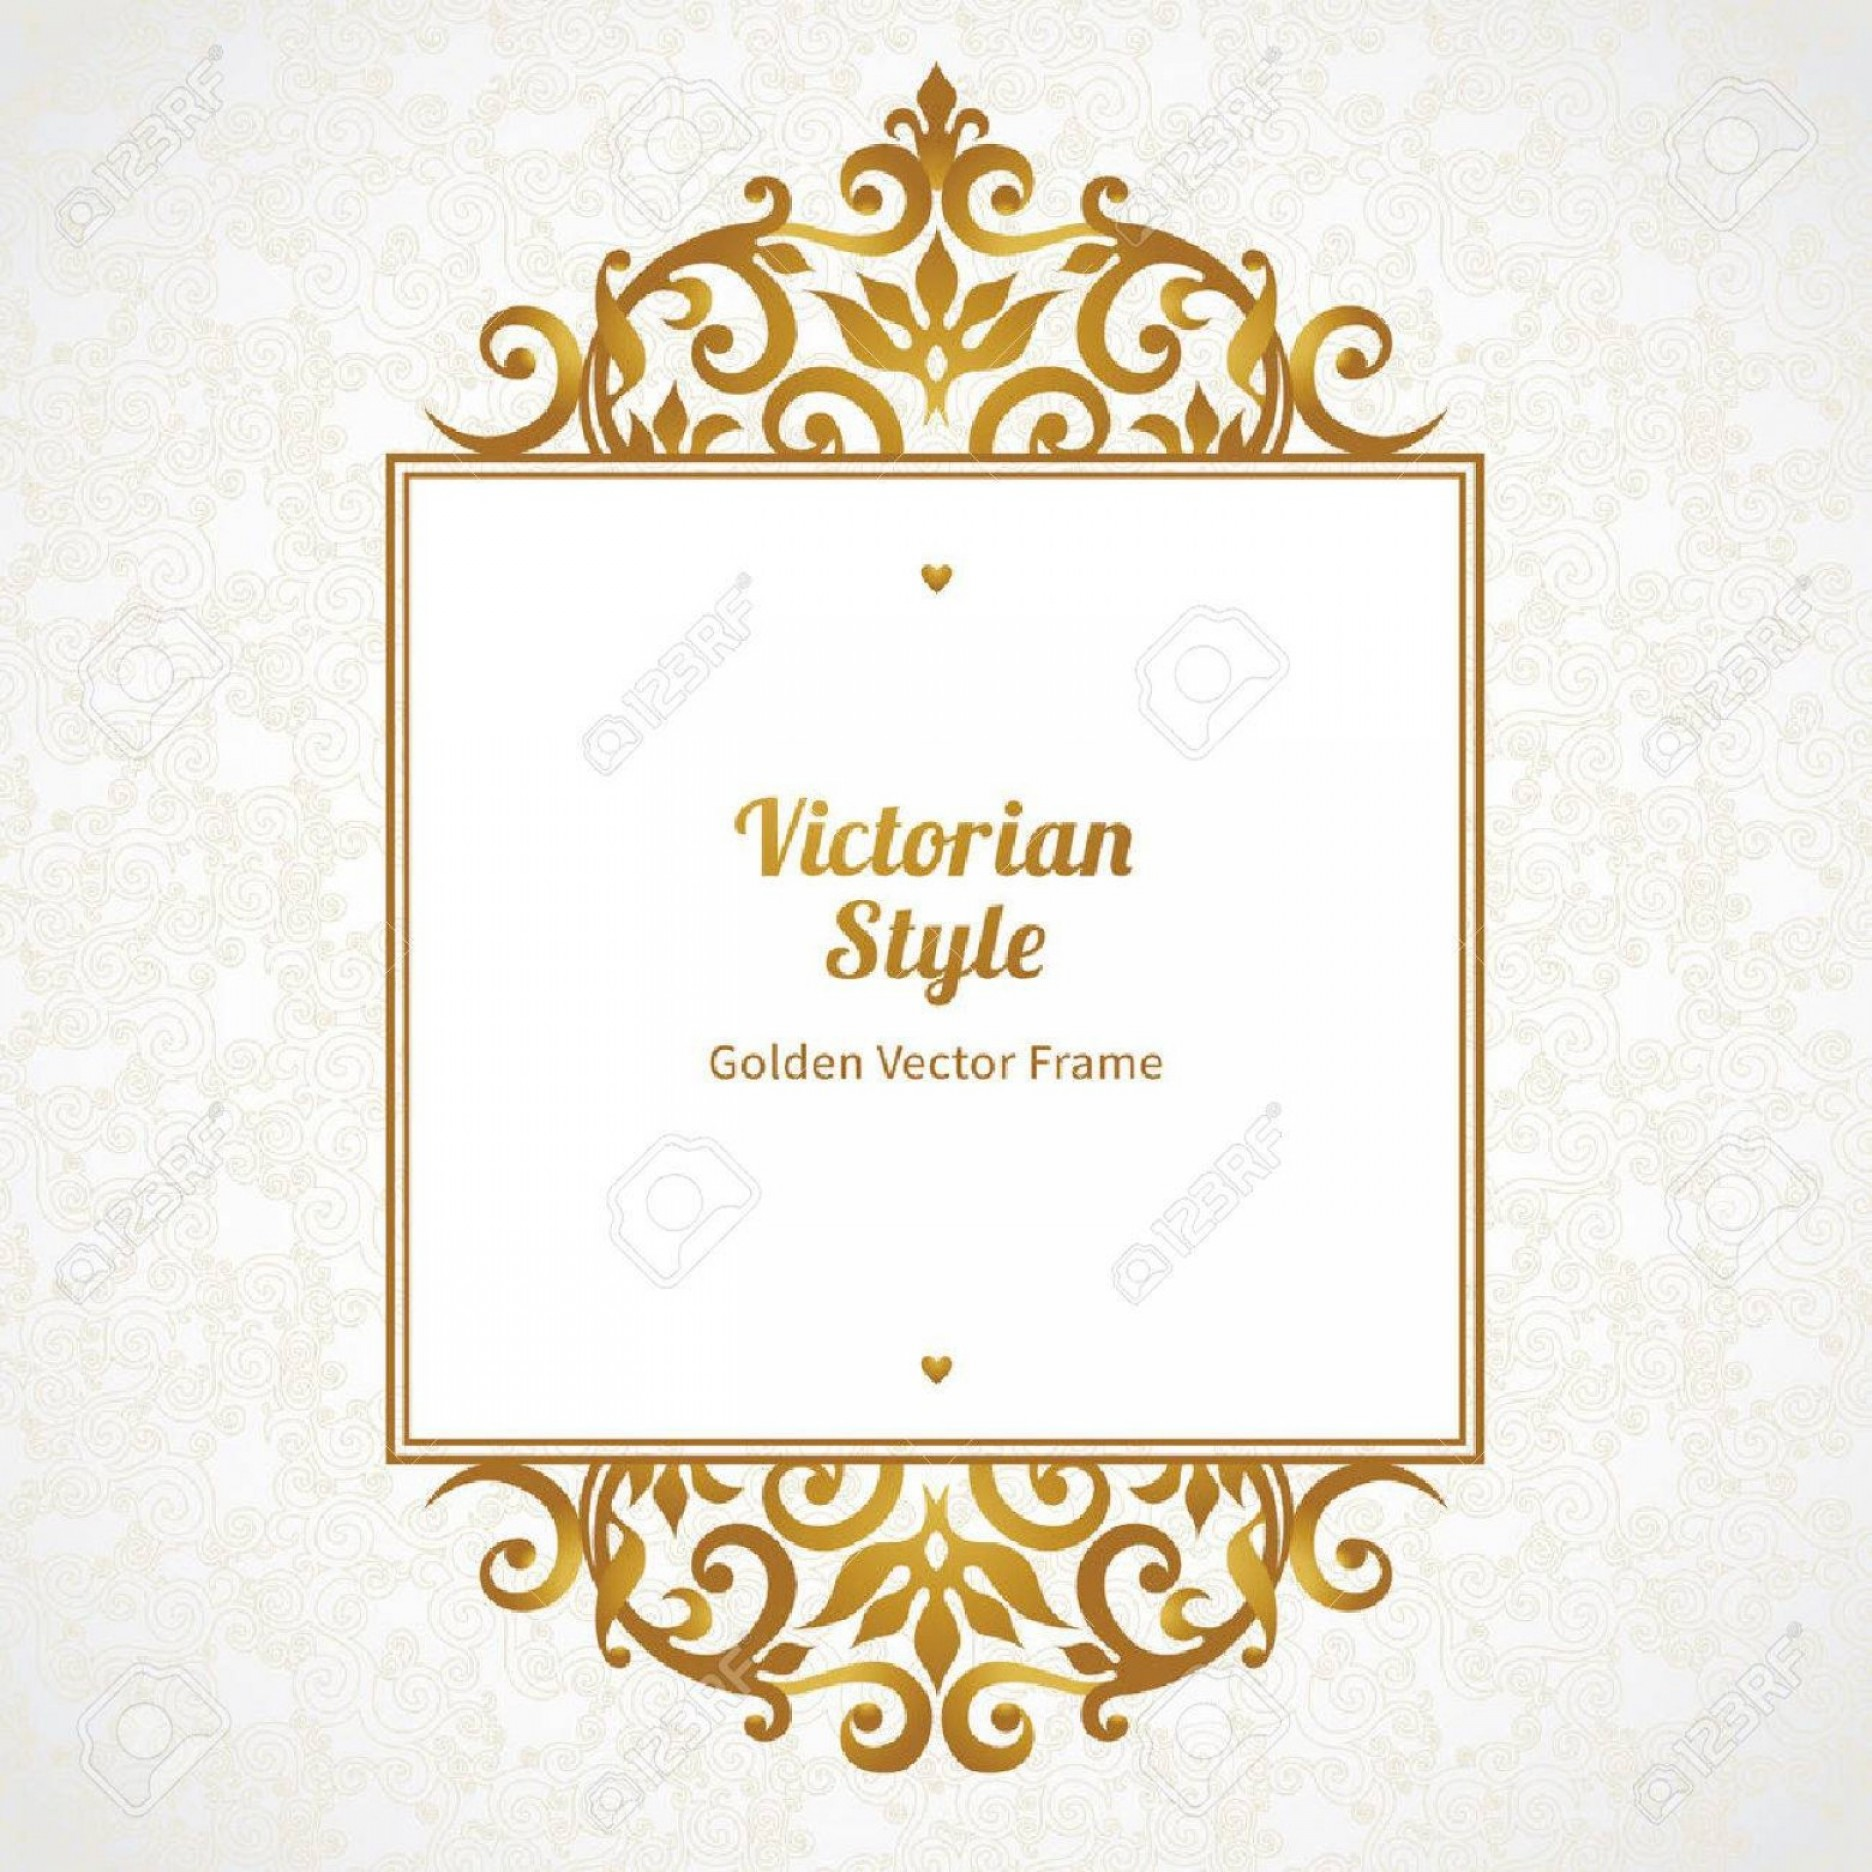 Decorative Text Vector: Photostock Vector Vector Decorative Frame In Victorian Style Elegant Element For Design Template Place For Text Golden